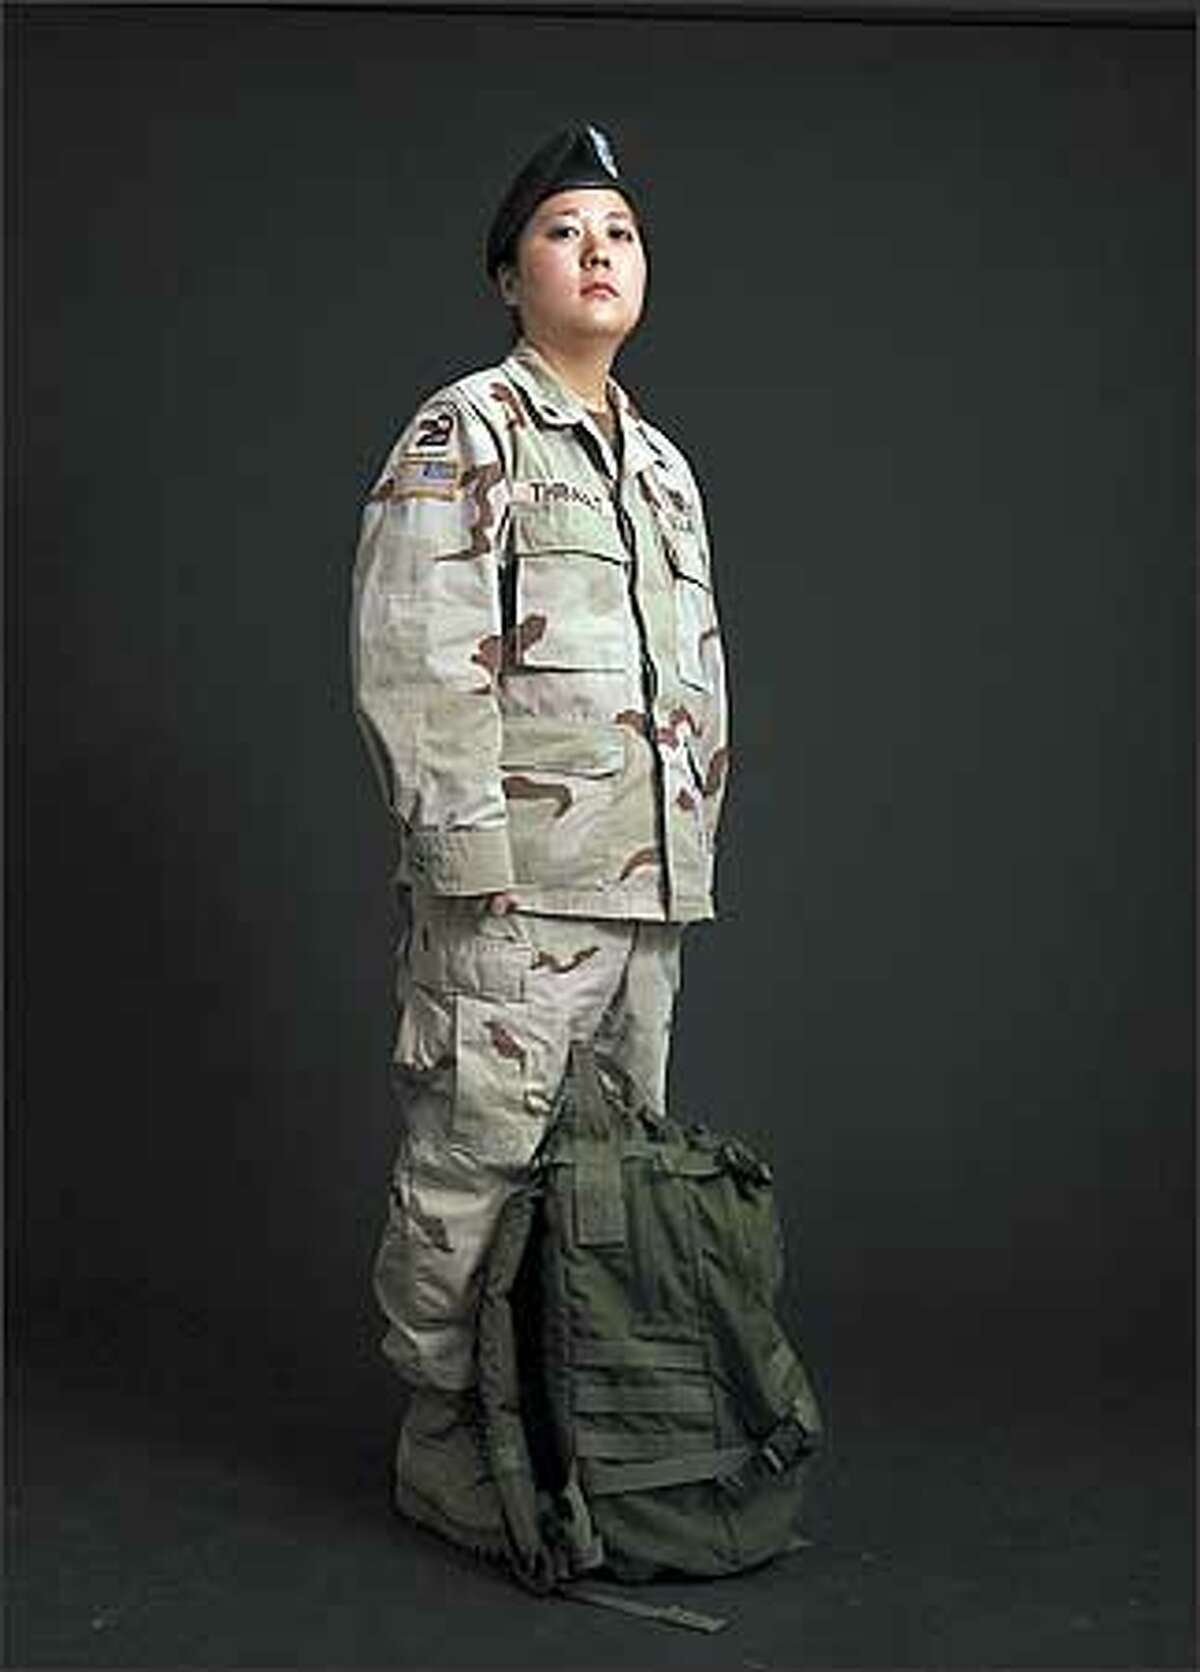 Spc. Heather Thibault spent 11 months in Iraq as a medic with the Washington National Guard.